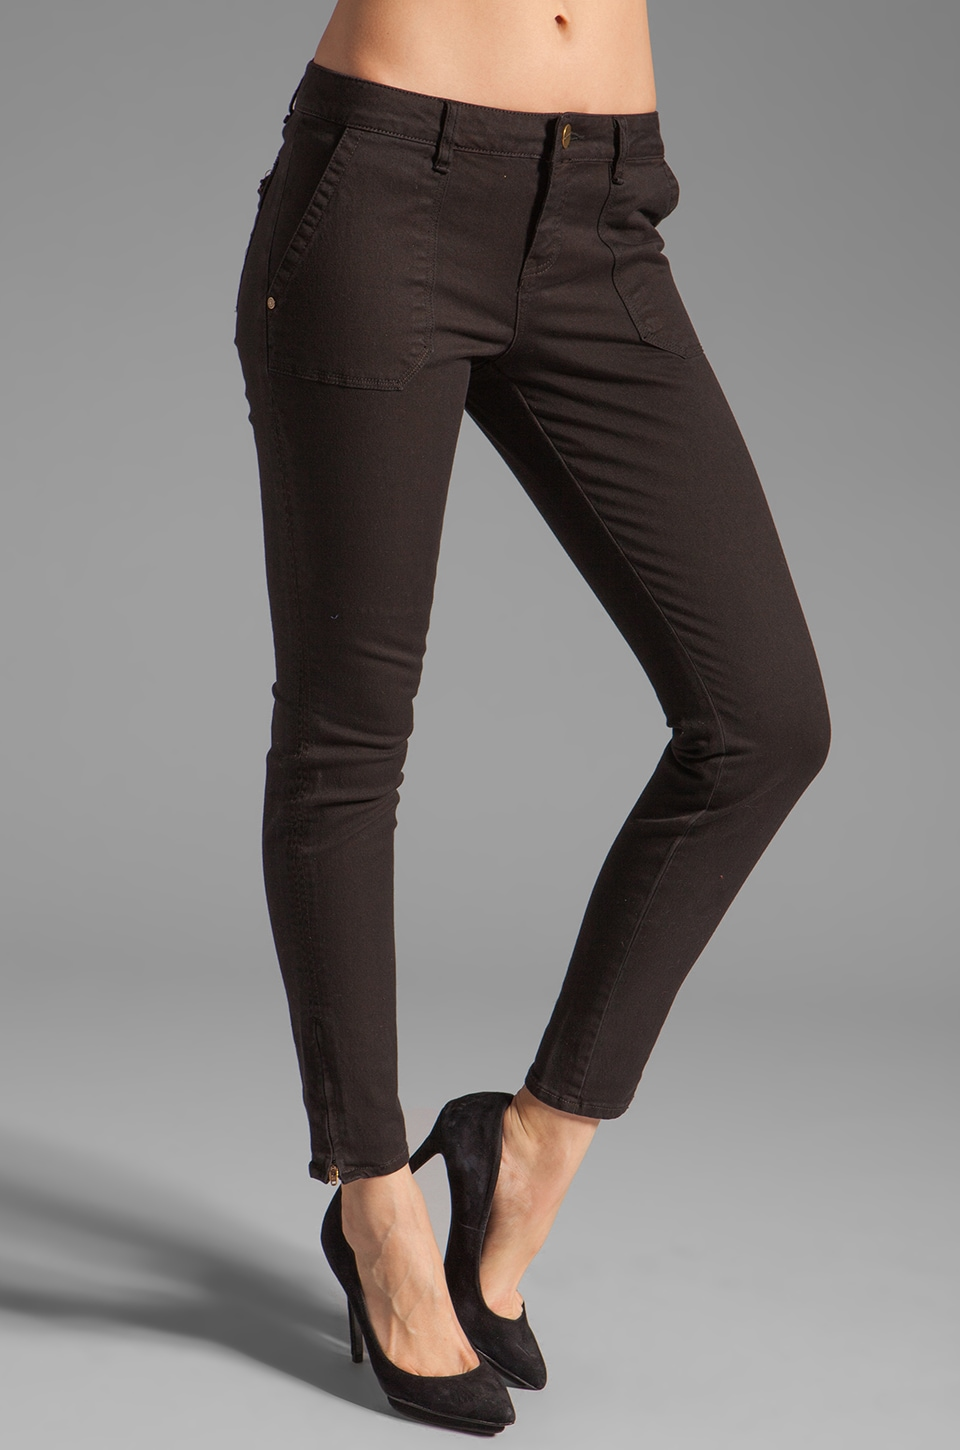 Sanctuary Craftsman Skinny in Black